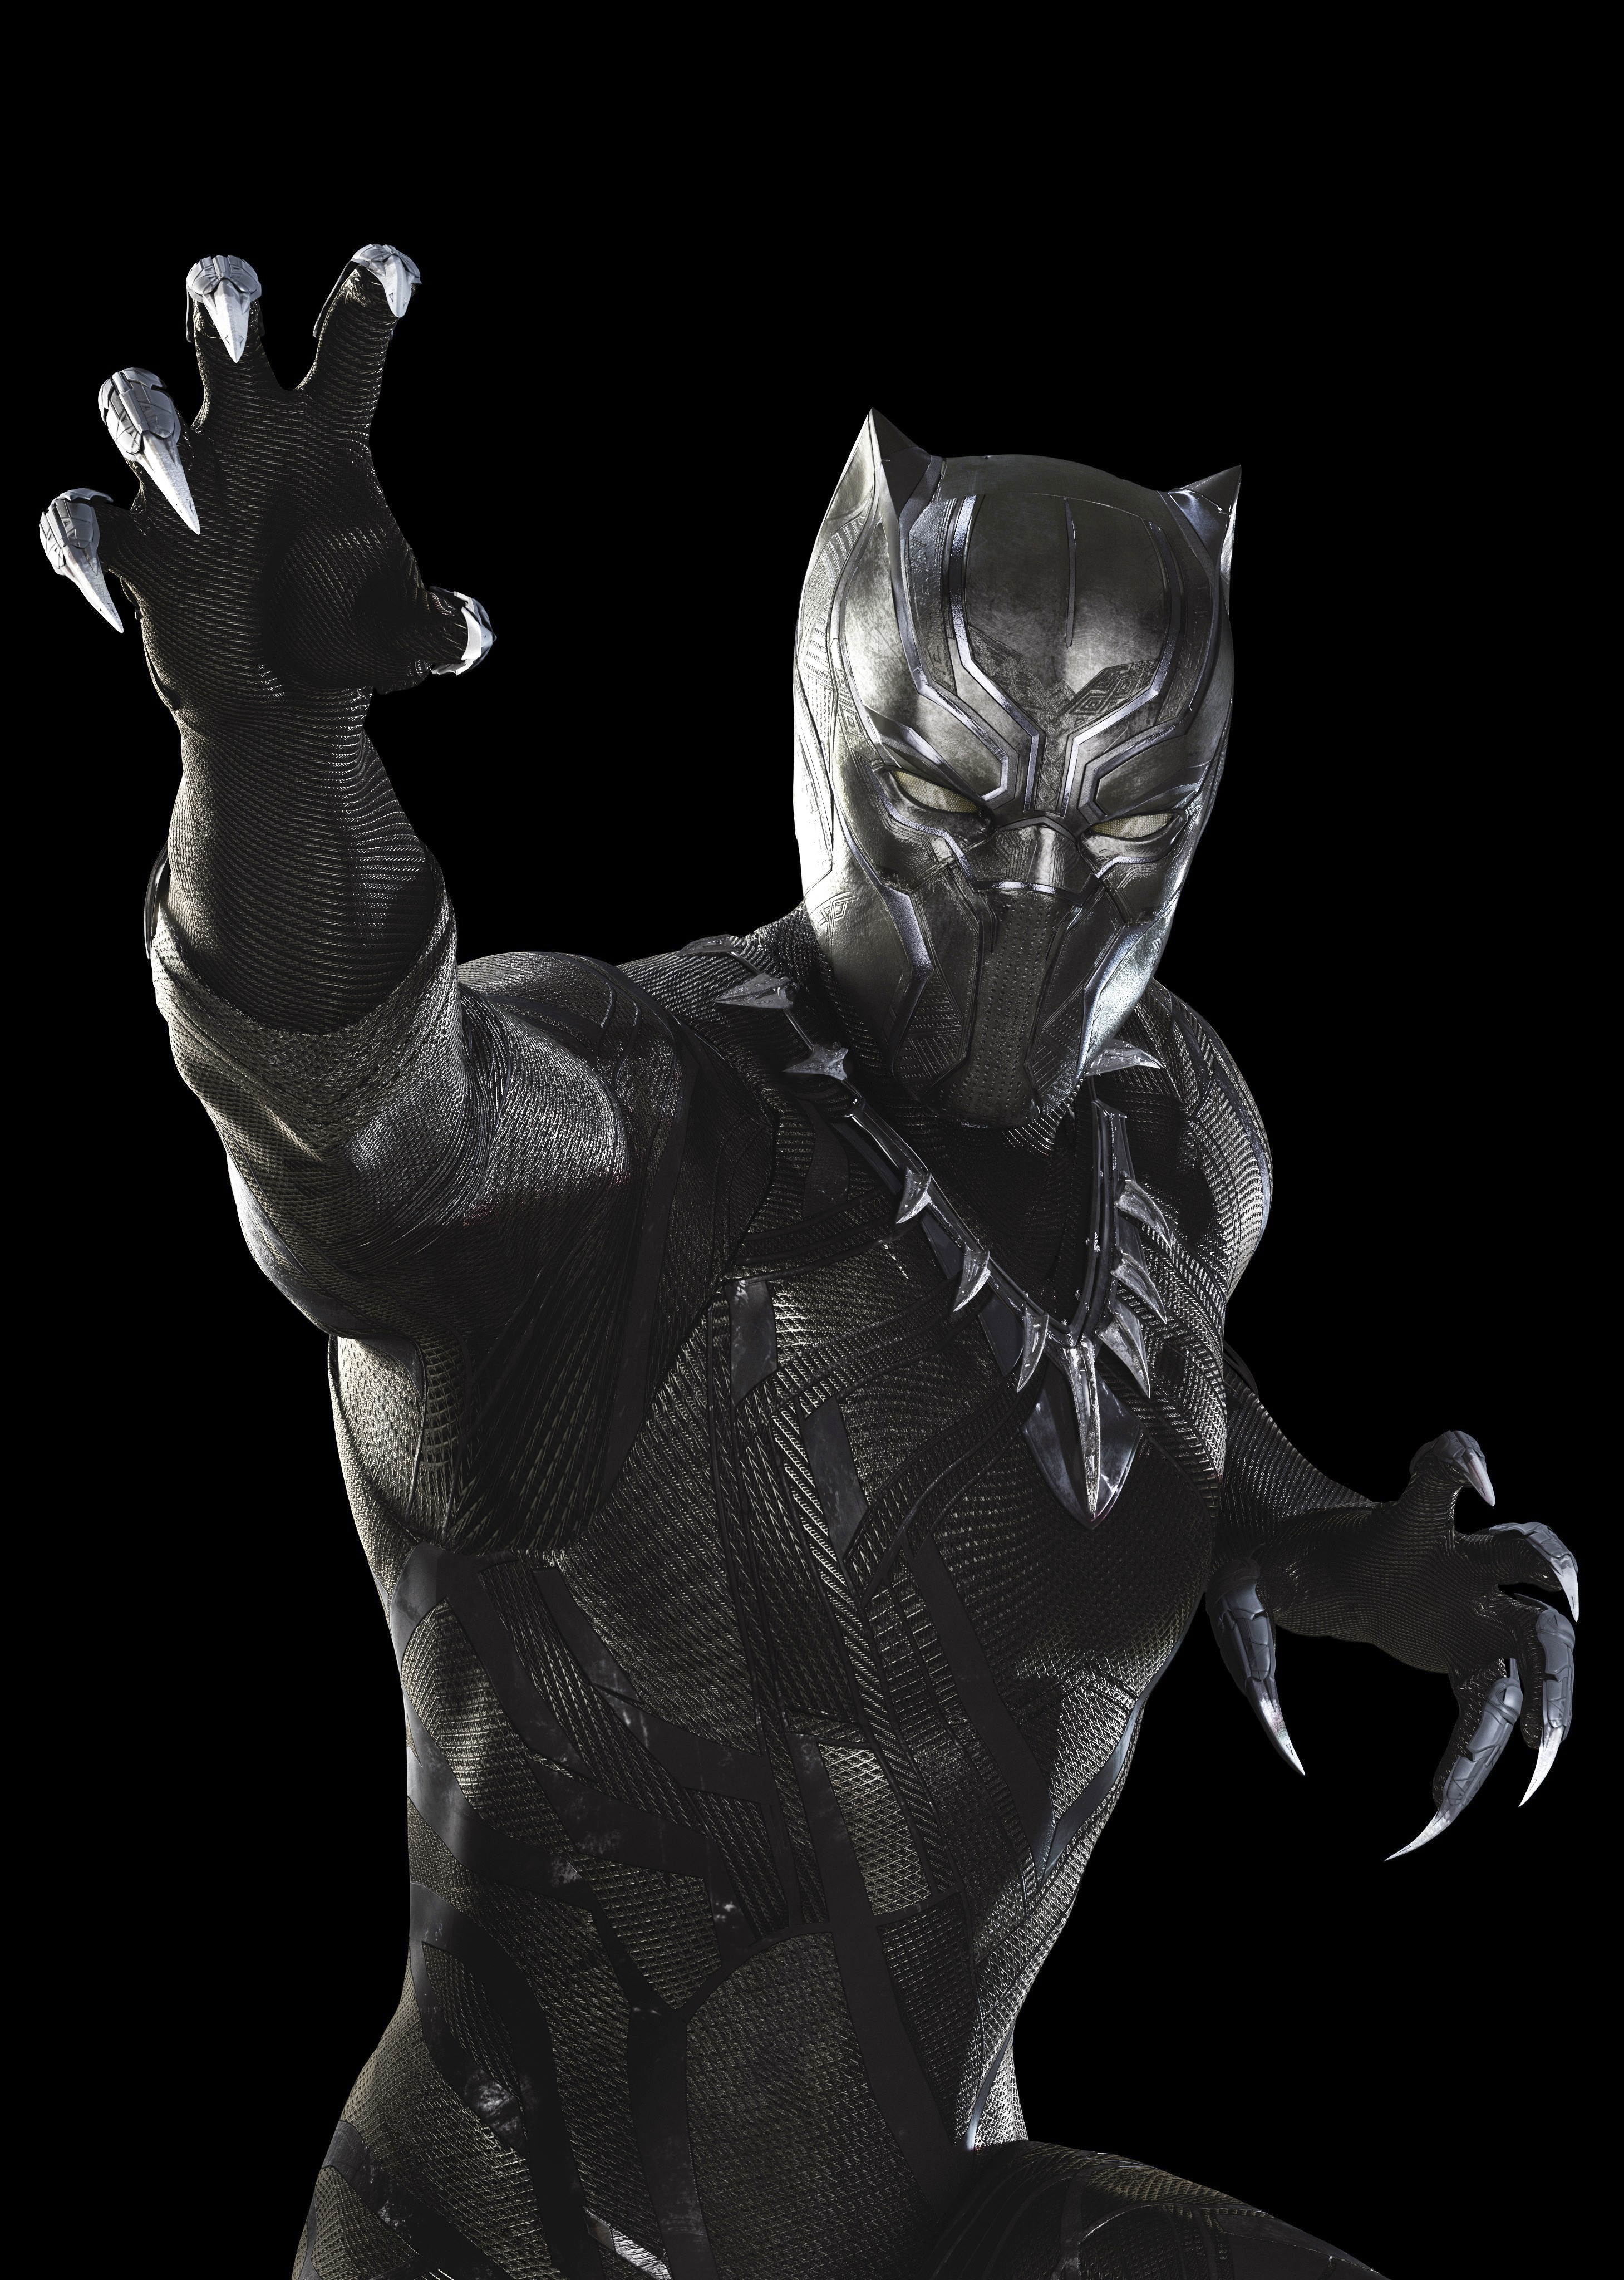 Chadwick Boseman as Black Panther/T'Challa in Marvel's Captain America: Civil War